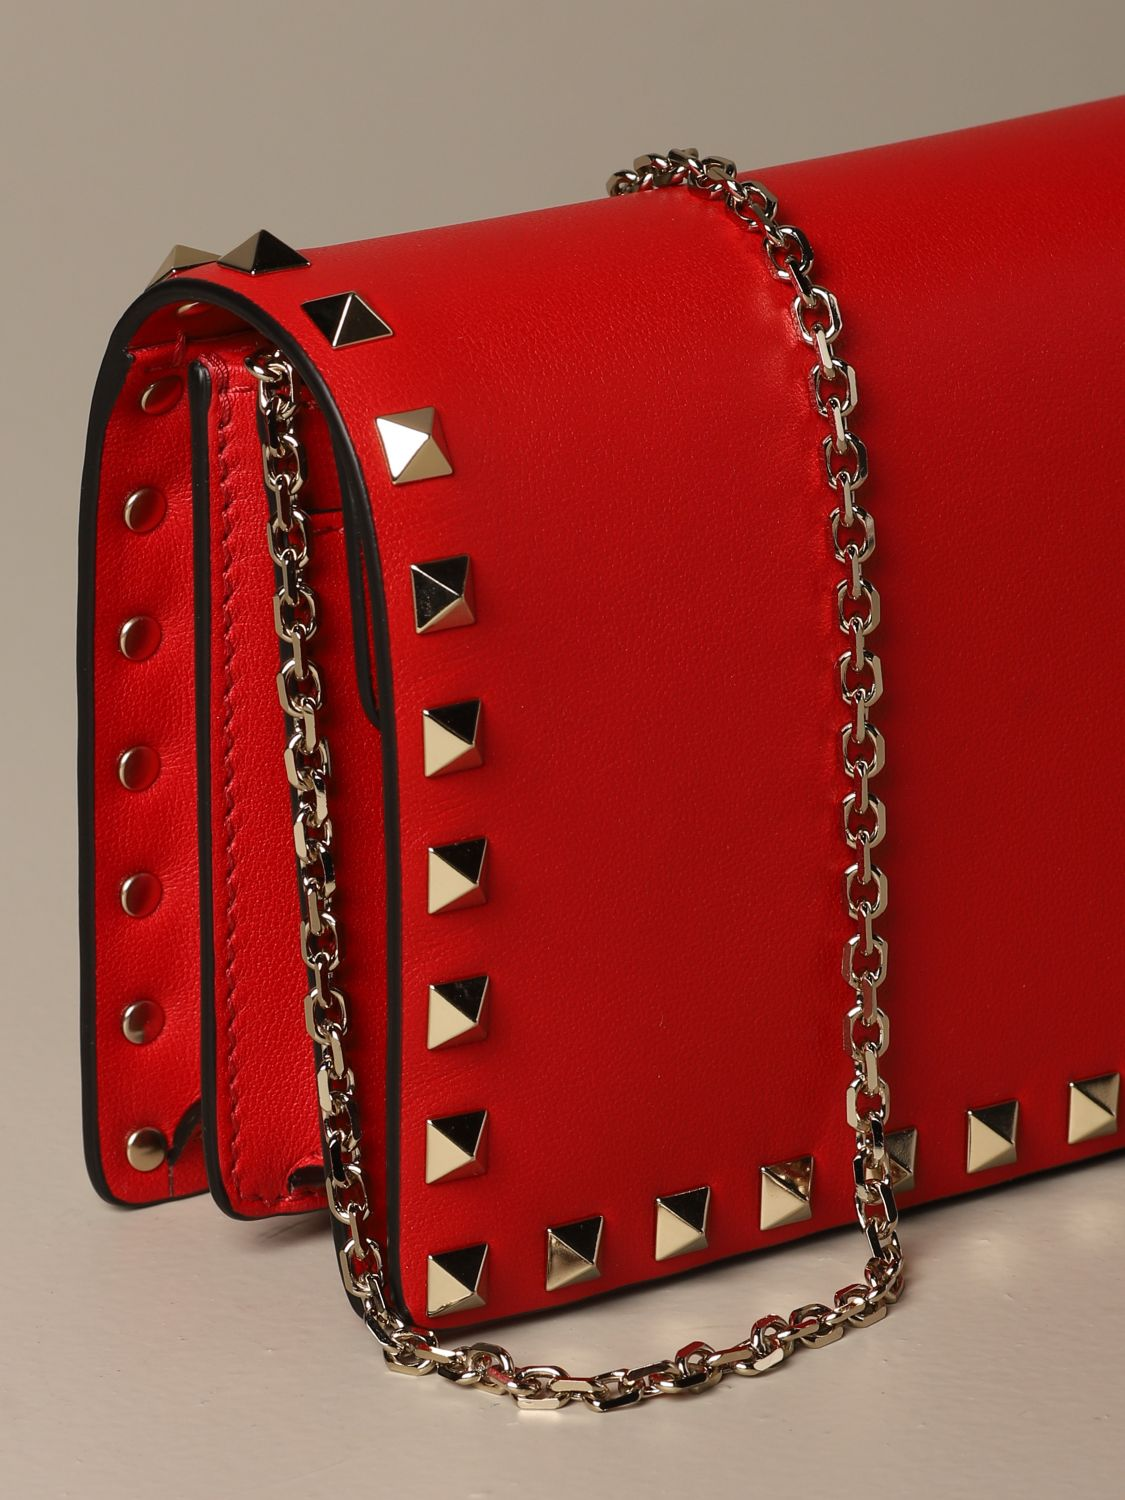 Mini bag Valentino Garavani: Valentino Garavani Rockstud leather shoulder bag red 4